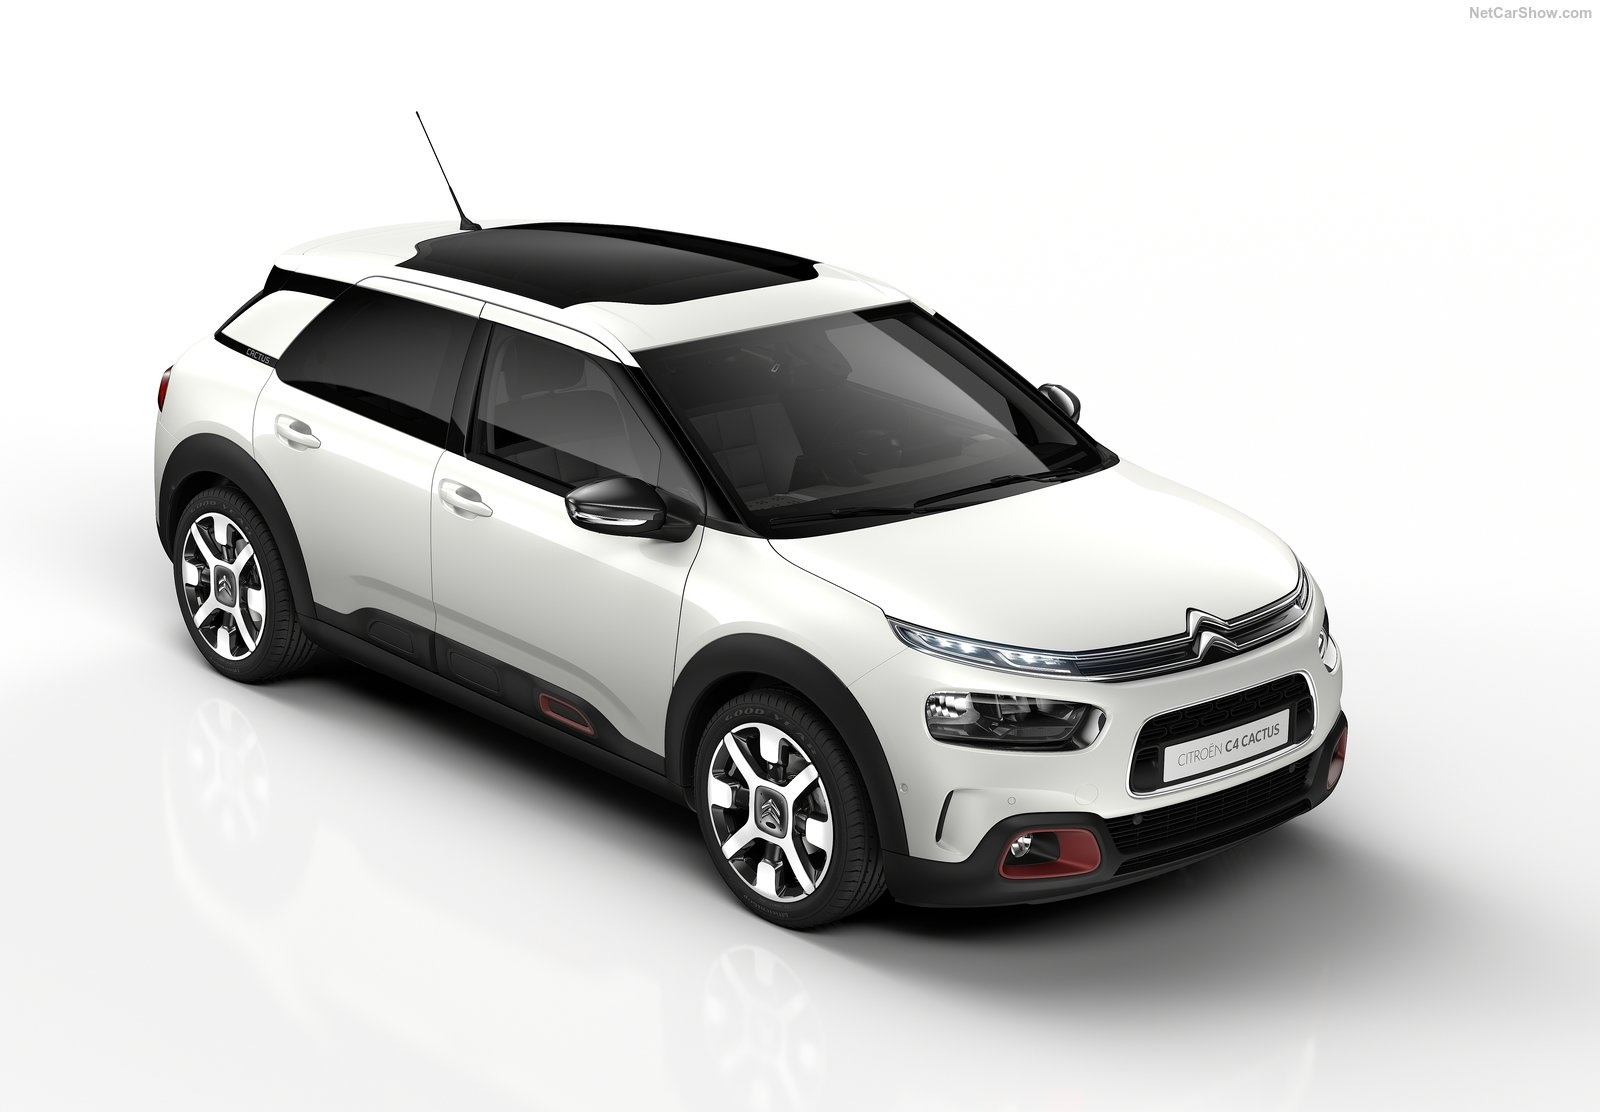 73 The Best 2019 Citroen C4 Model